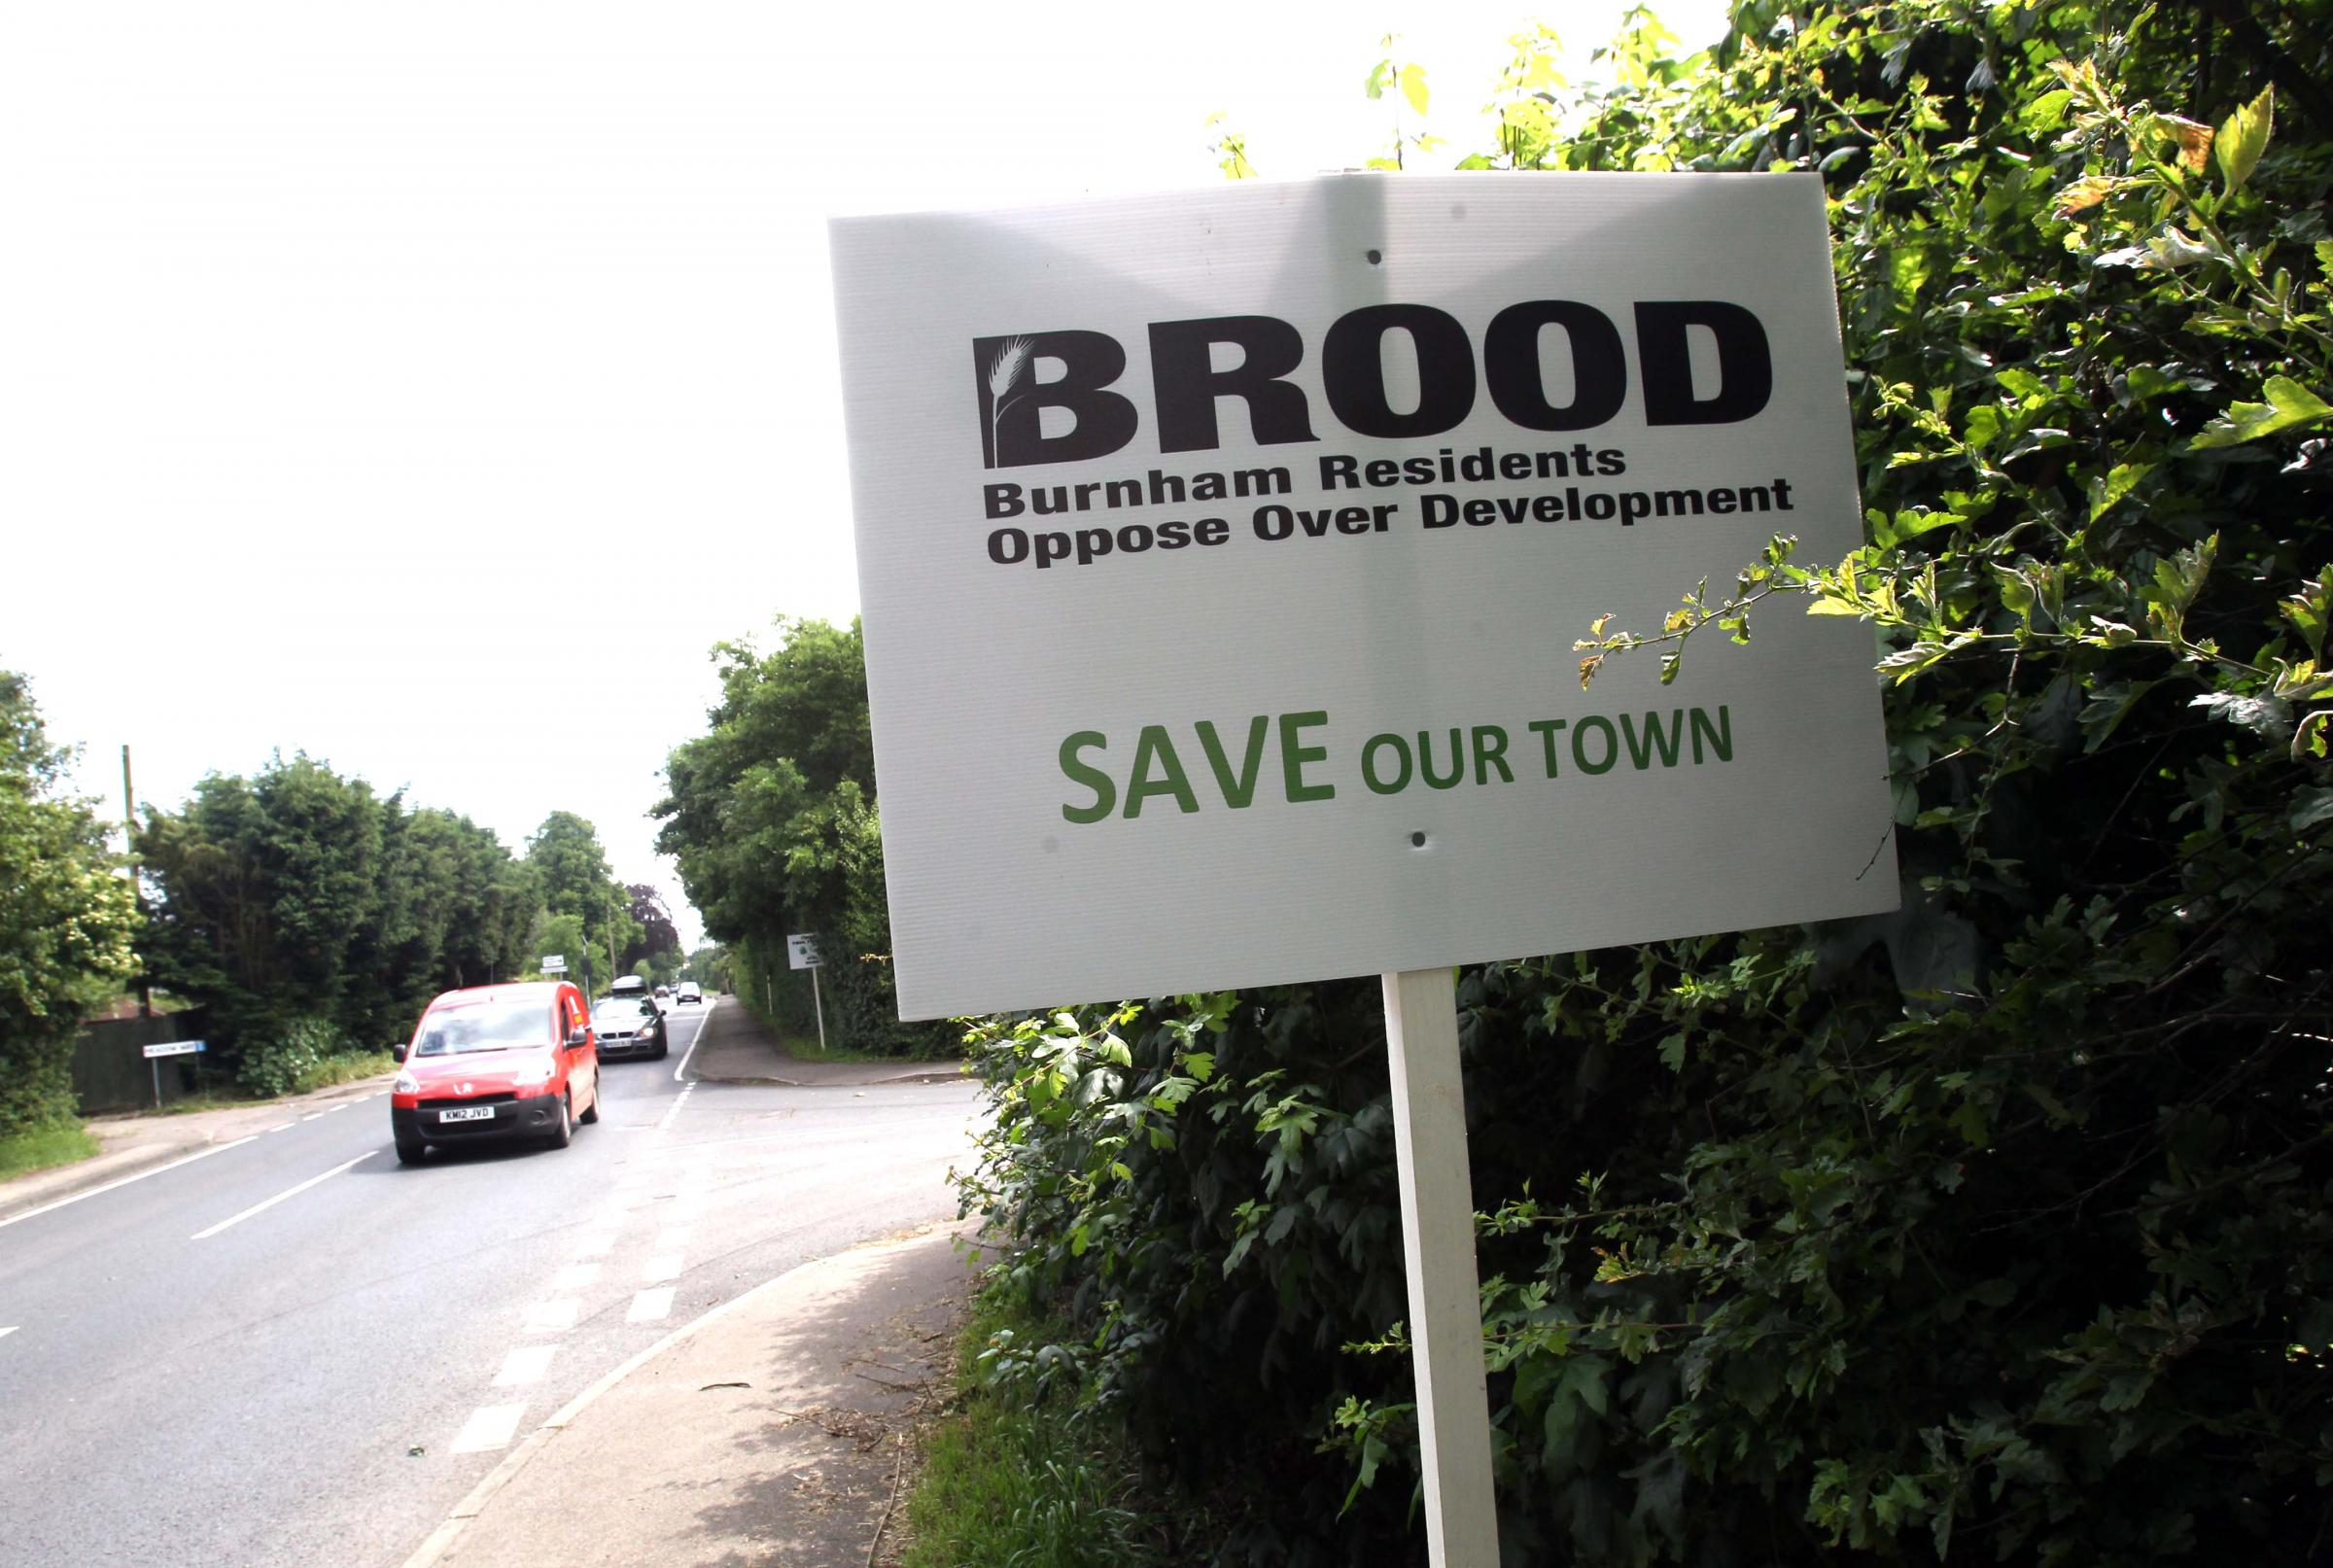 A sign put up by campaigners opposed to the development